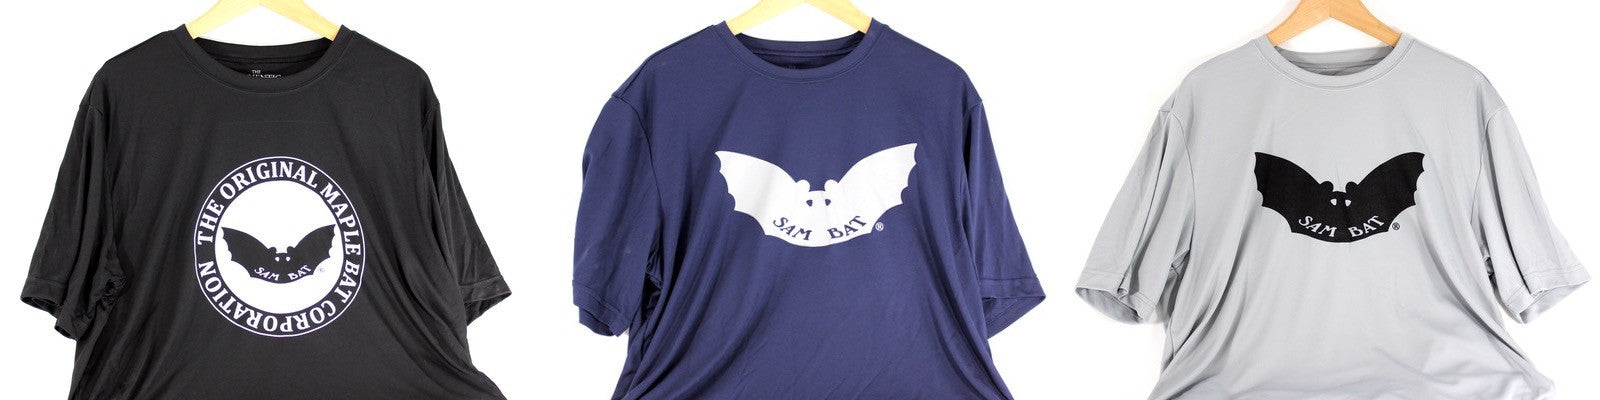 Sam Bat Performance T-Shirt